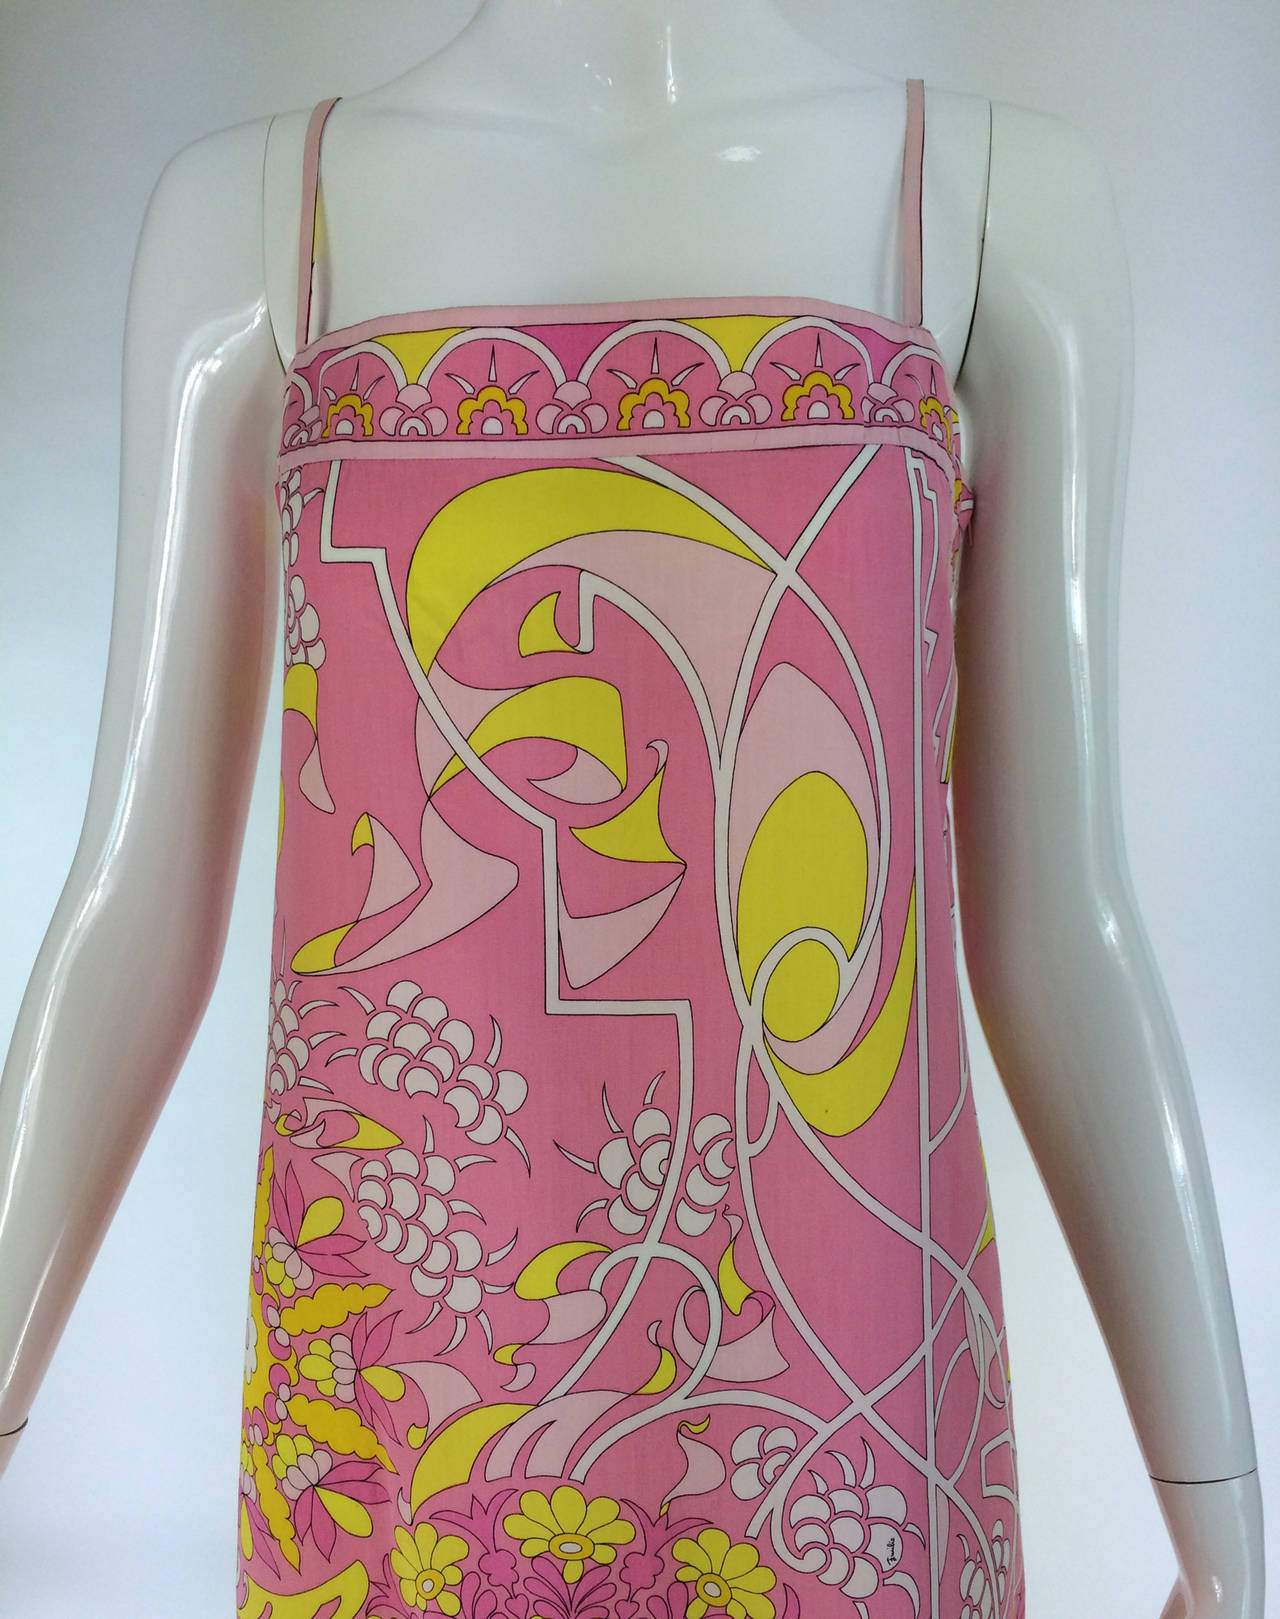 Emilio Pucci printed cotton maxi dress out of the ordinary design 1960s...The perfect Pucci summer dress...Vibrant printed cool cotton maxi dres....In shades of pink with pops of yellow and off white...Slip stye maxi dress that has a banded bodice,